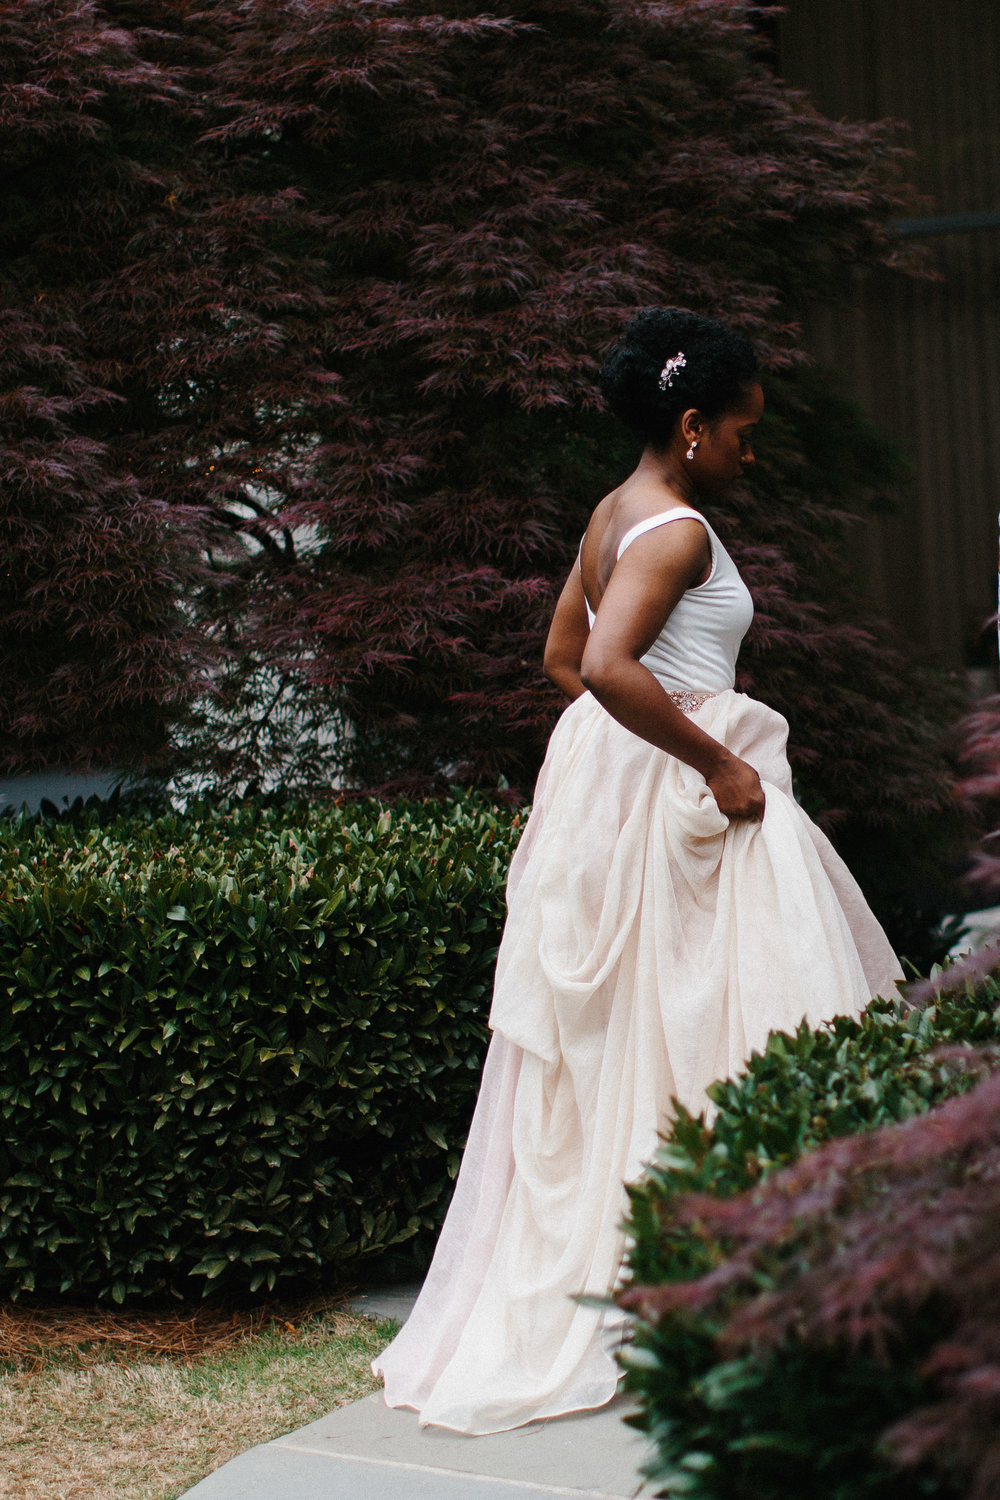 the_atrium_wedding_atlanta_norcross_lifestyle_photographers_lgbtq_1086.jpg